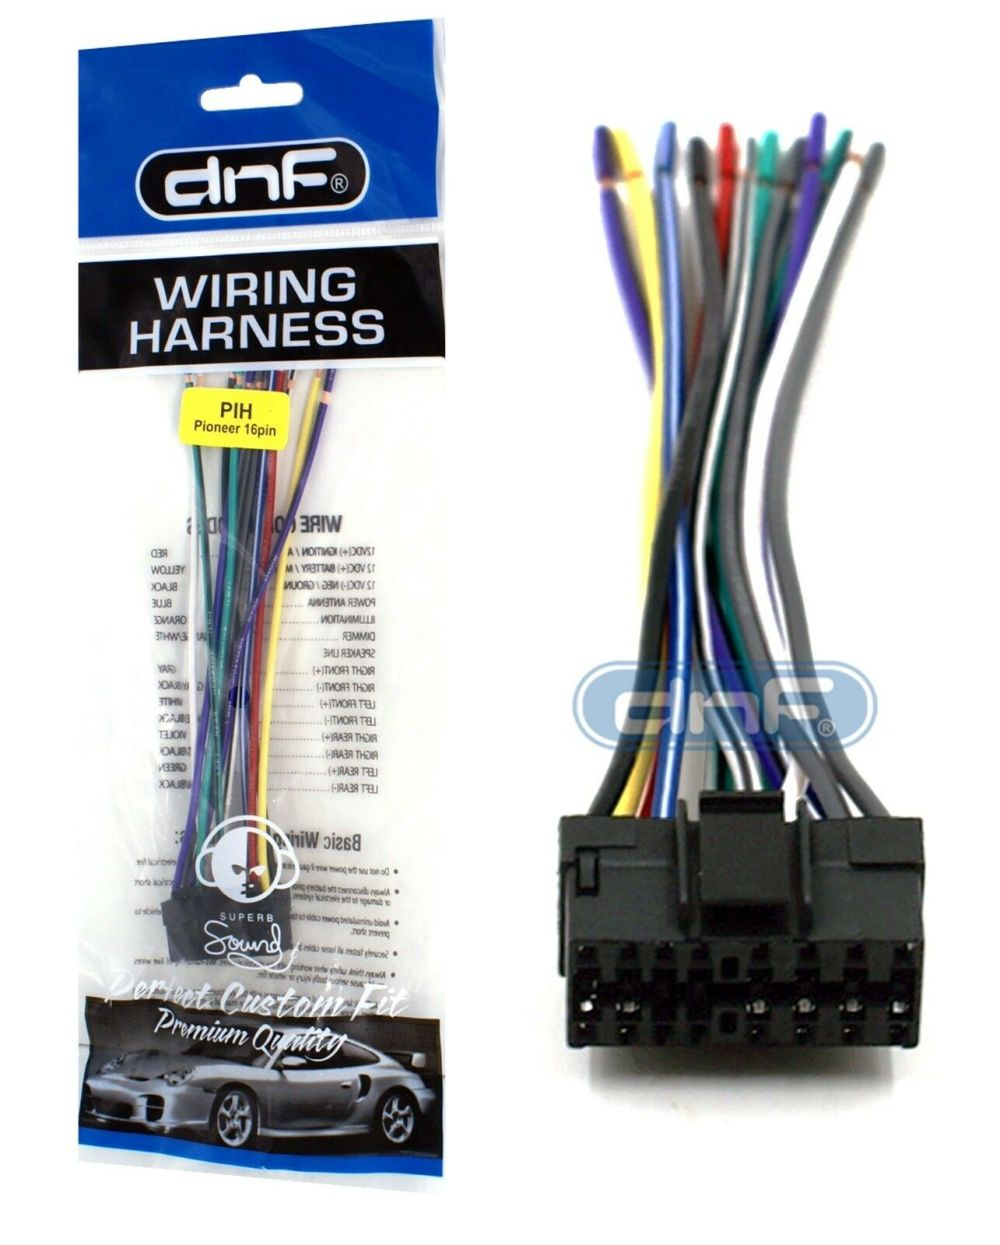 medium resolution of pioneer deh 1100 deh 1150 deh 2100 deh 2150 wiring harness ships pioneer deh 1100 deh